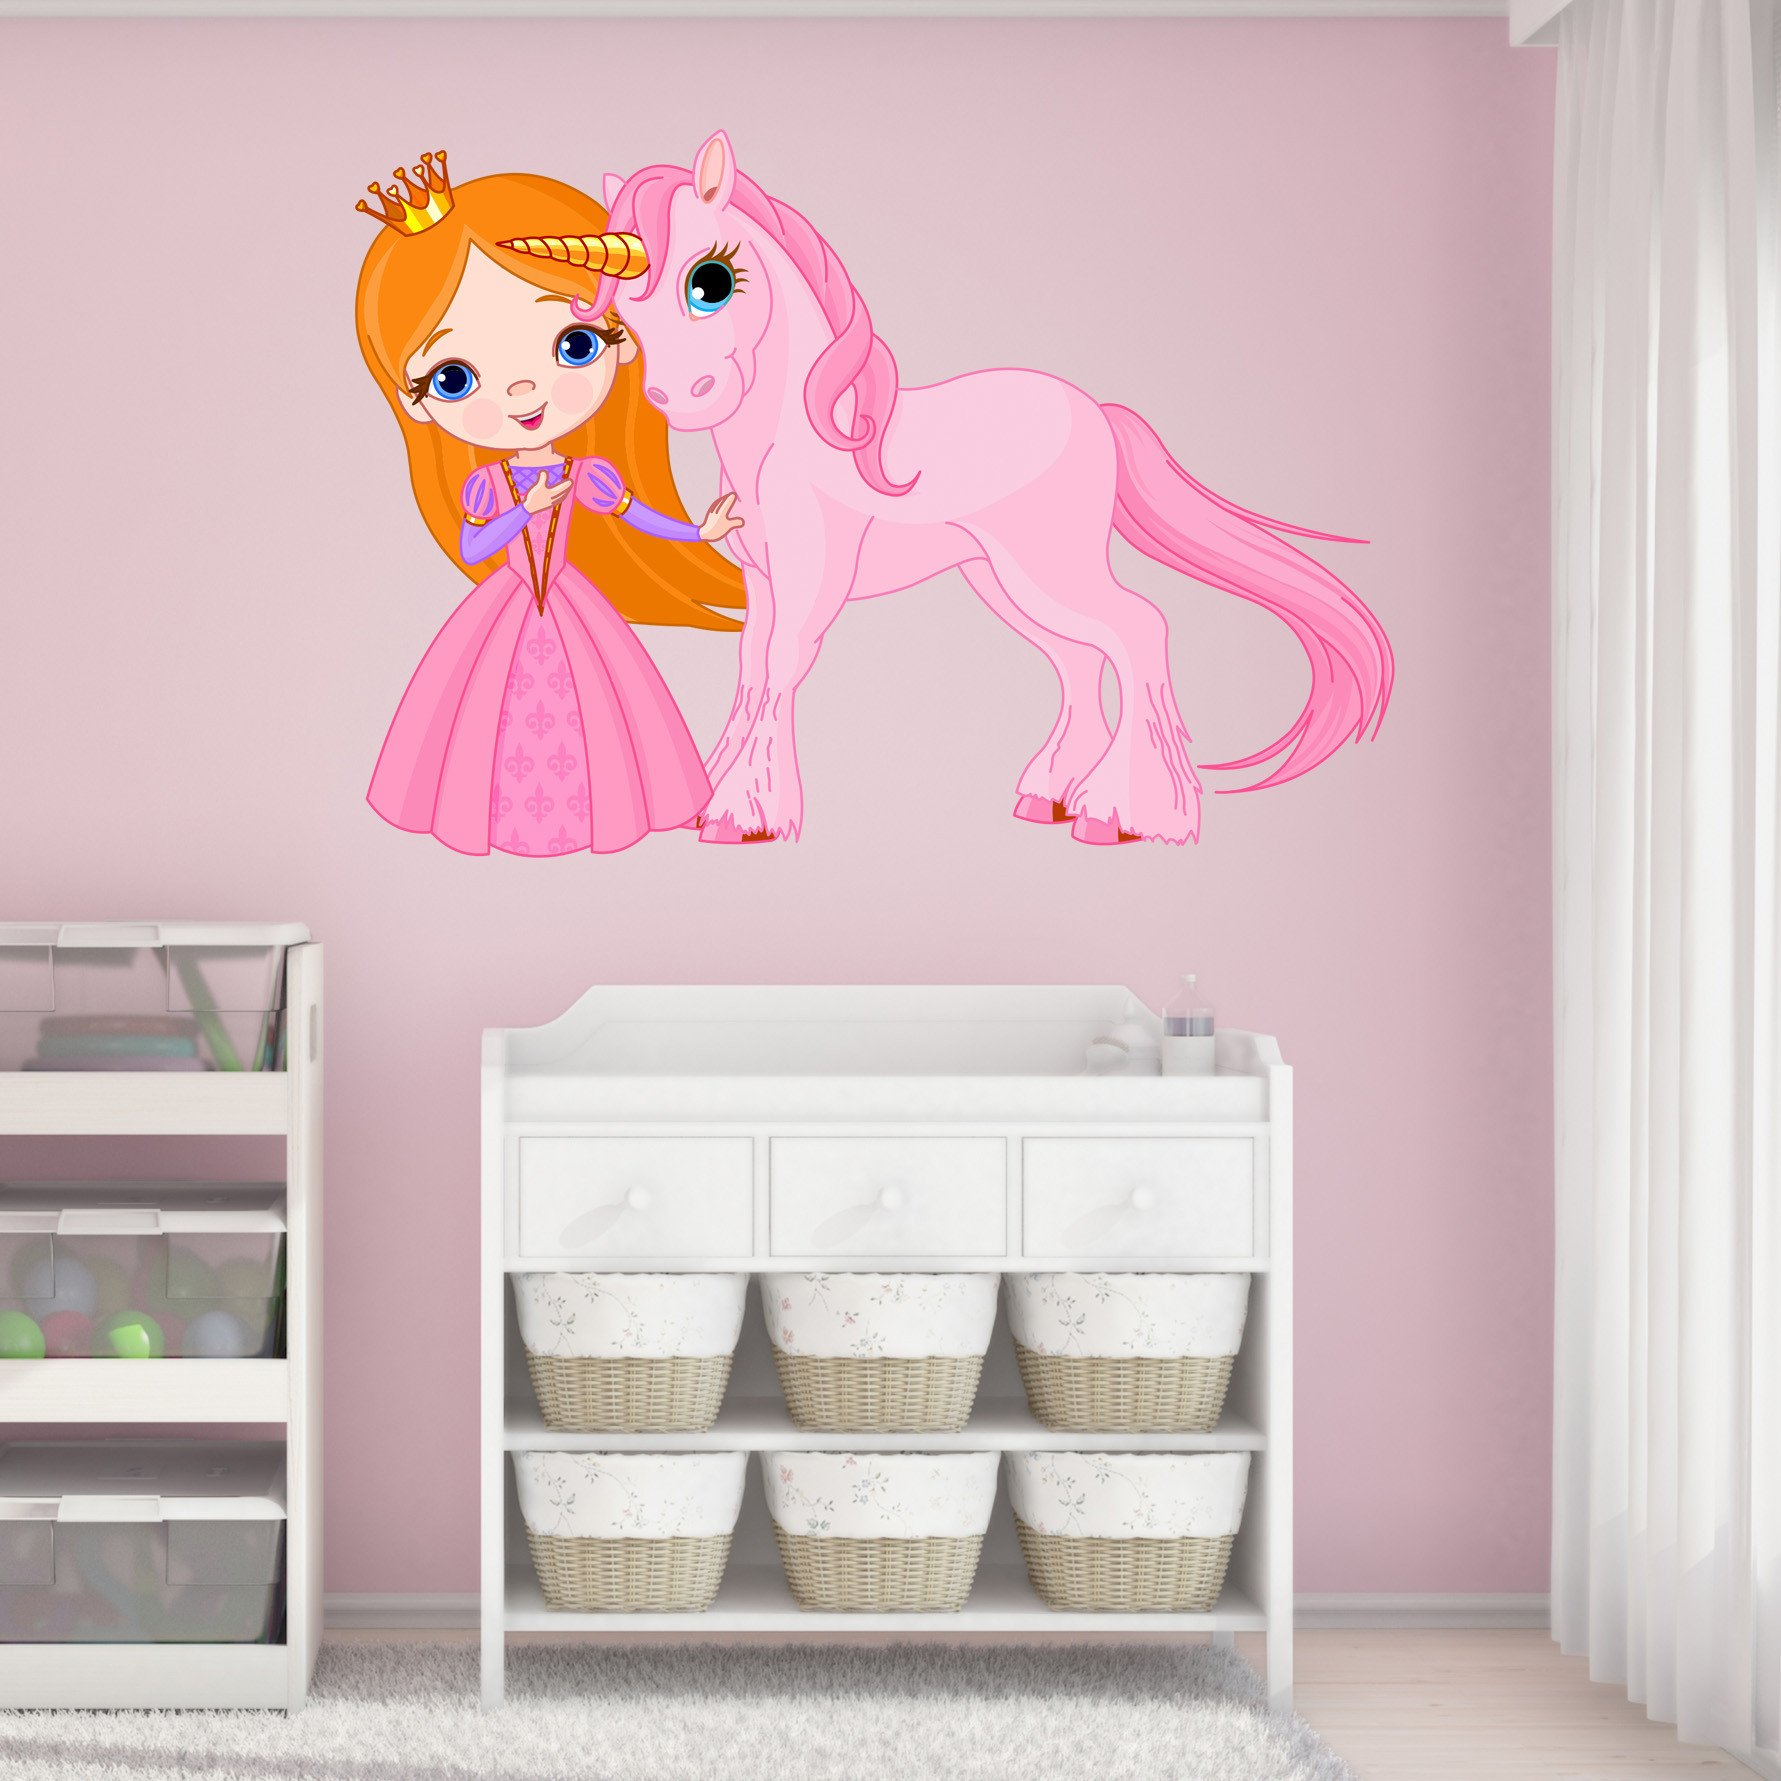 Princess and Unicorn Wall Decal by Style & Apply - Wall Sticker, Vinyl Wall Art, Home Decor, Wall Mural - SD3057 - 59x41